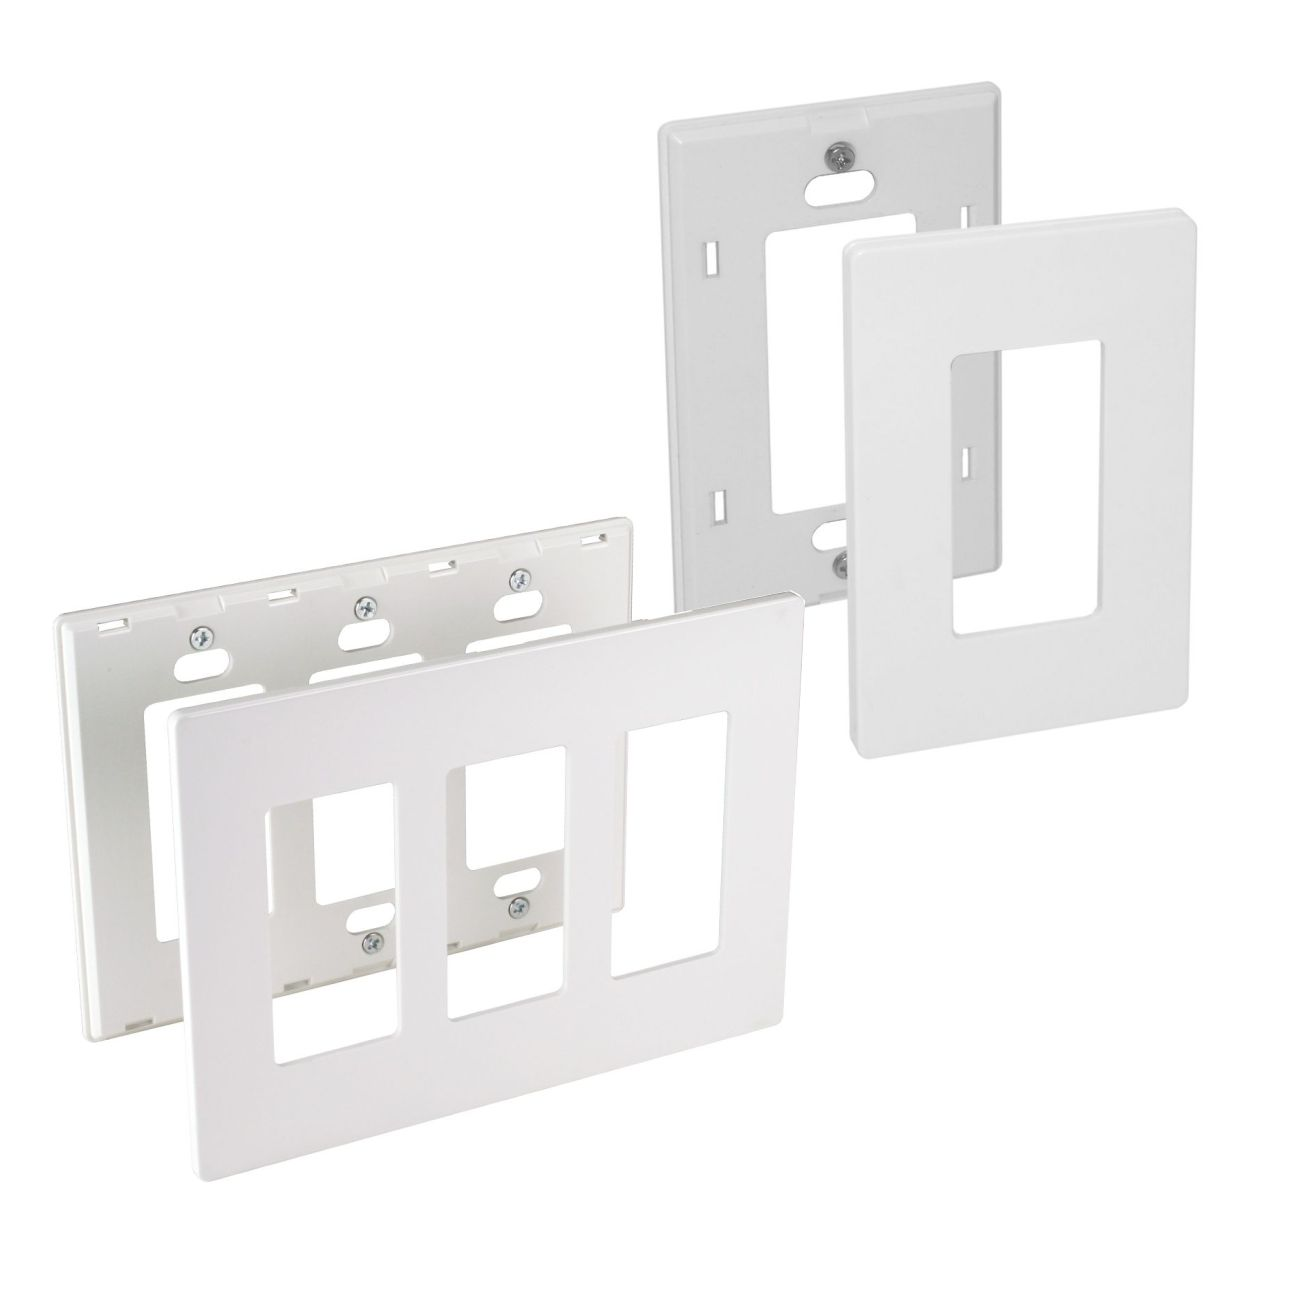 LEXAN Snap-On Wallplates